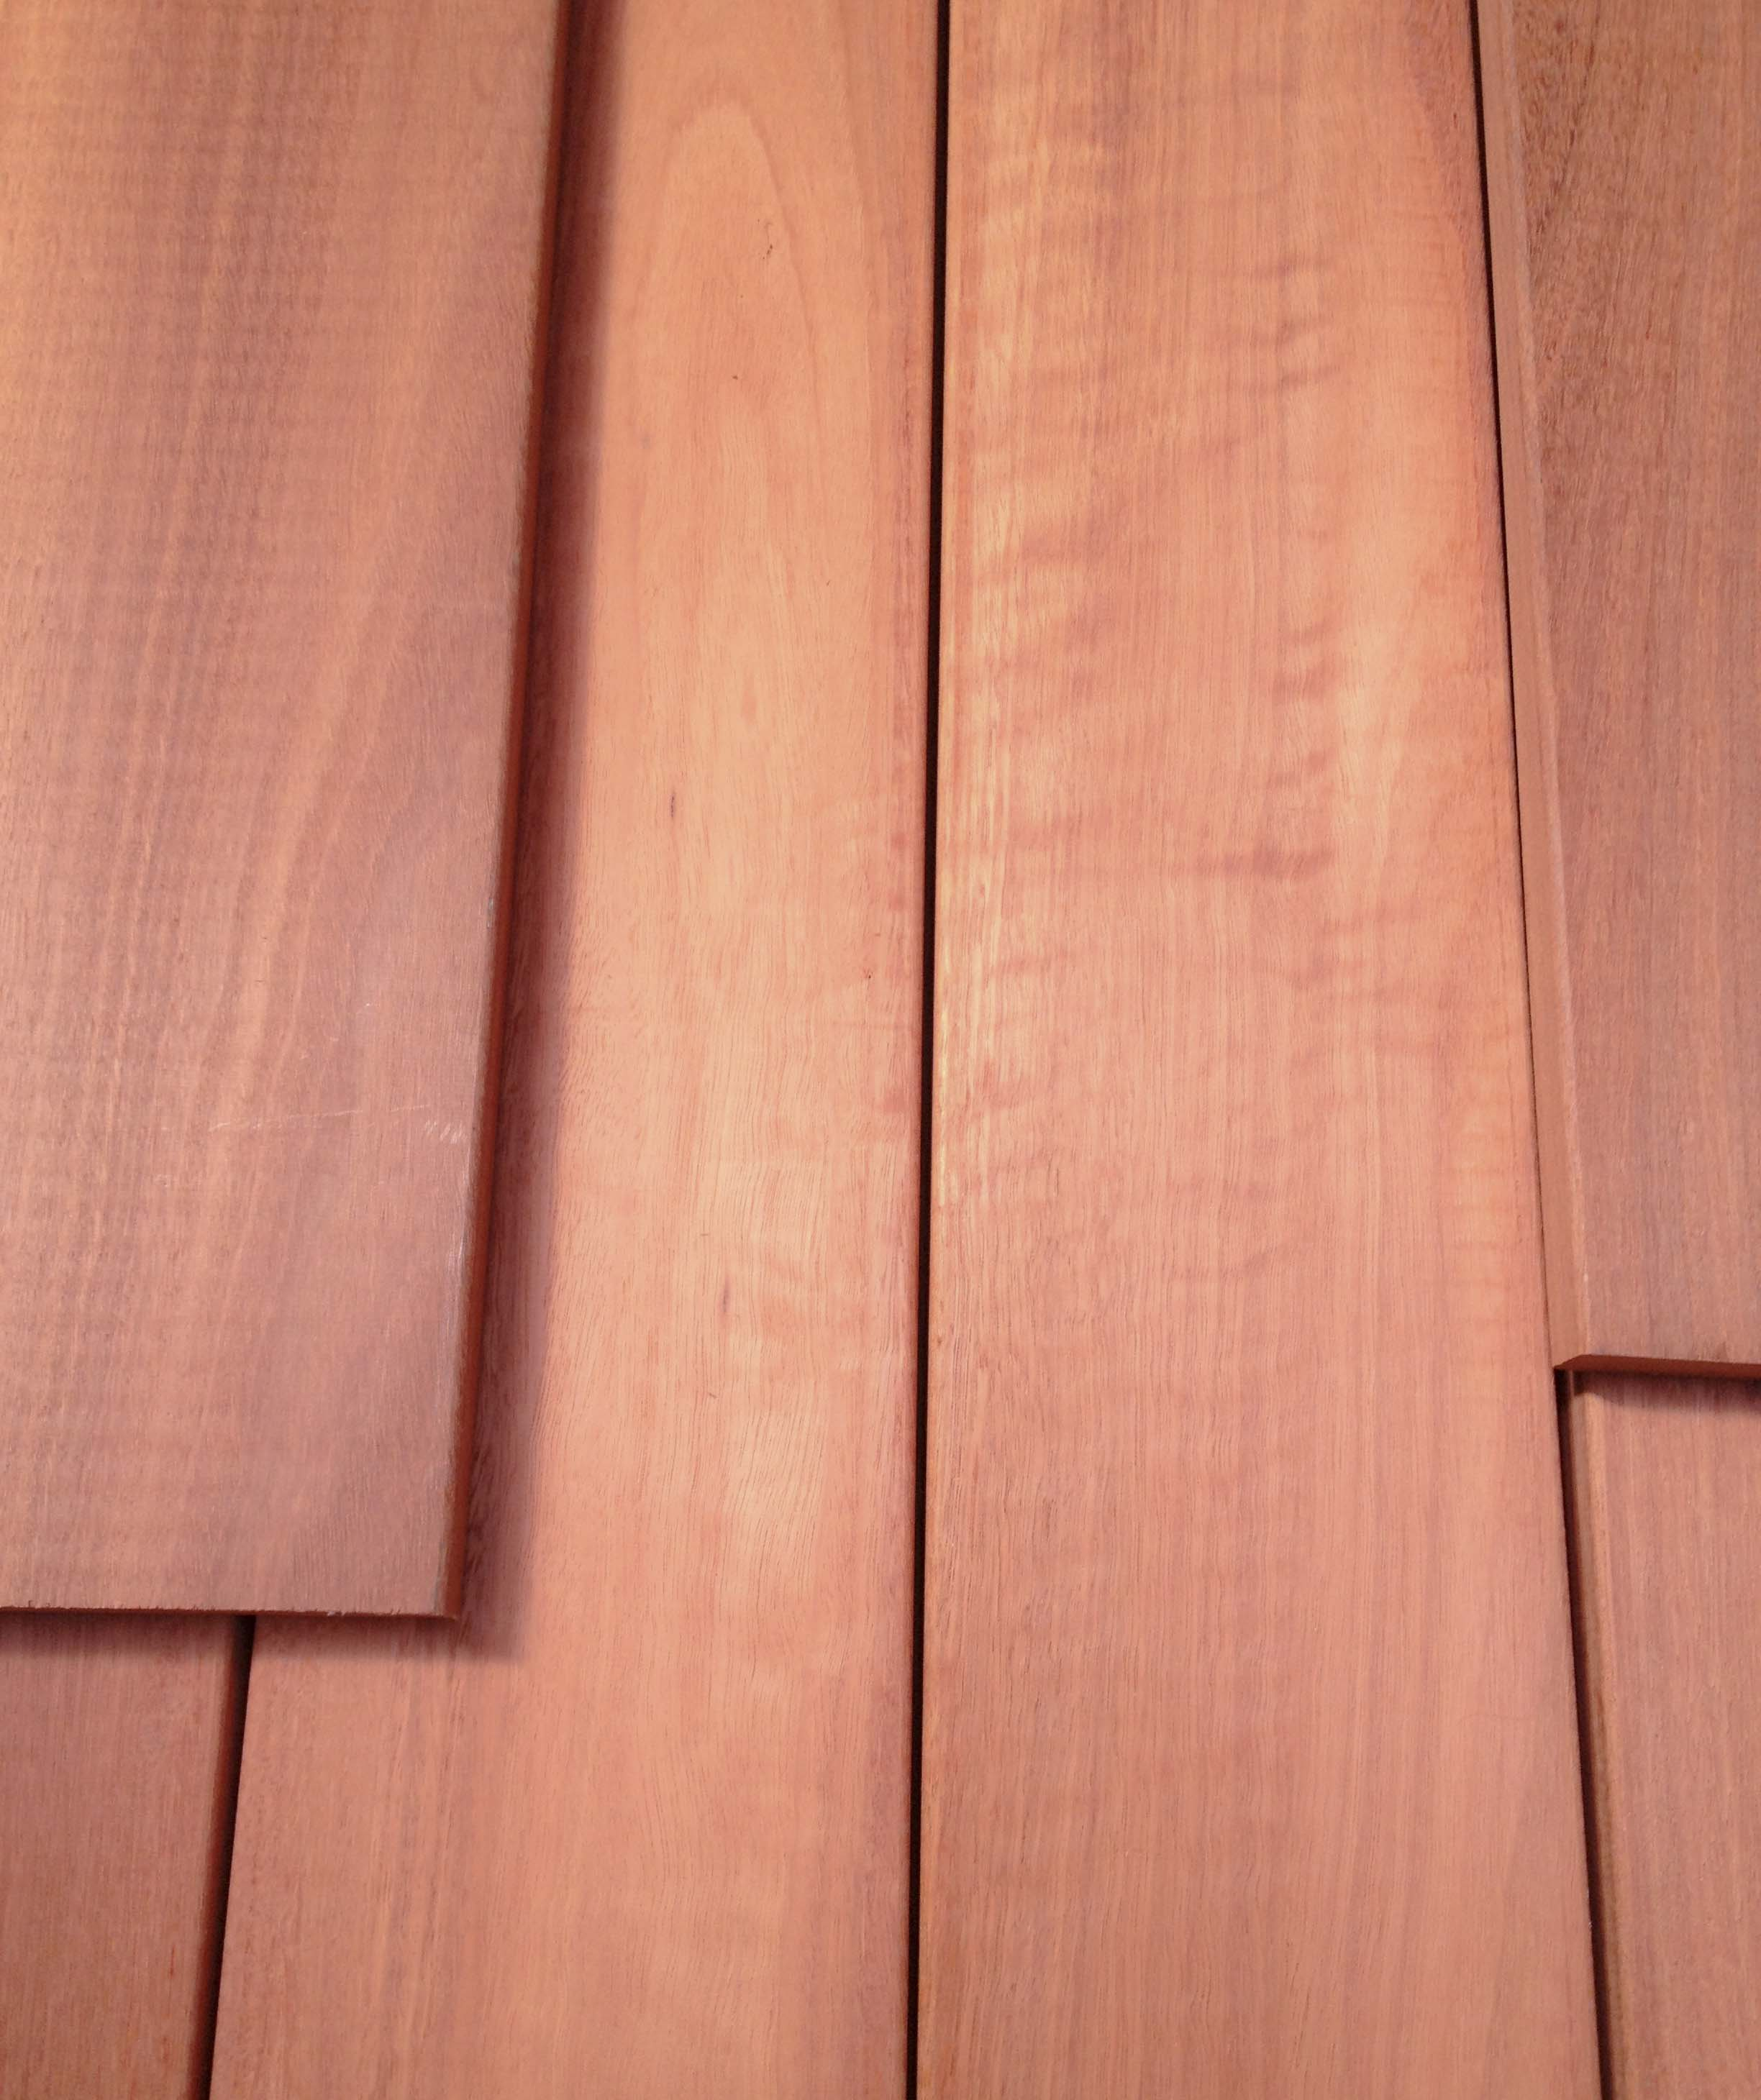 Jarrah gallery hardwood decks for Hardwood timber decking